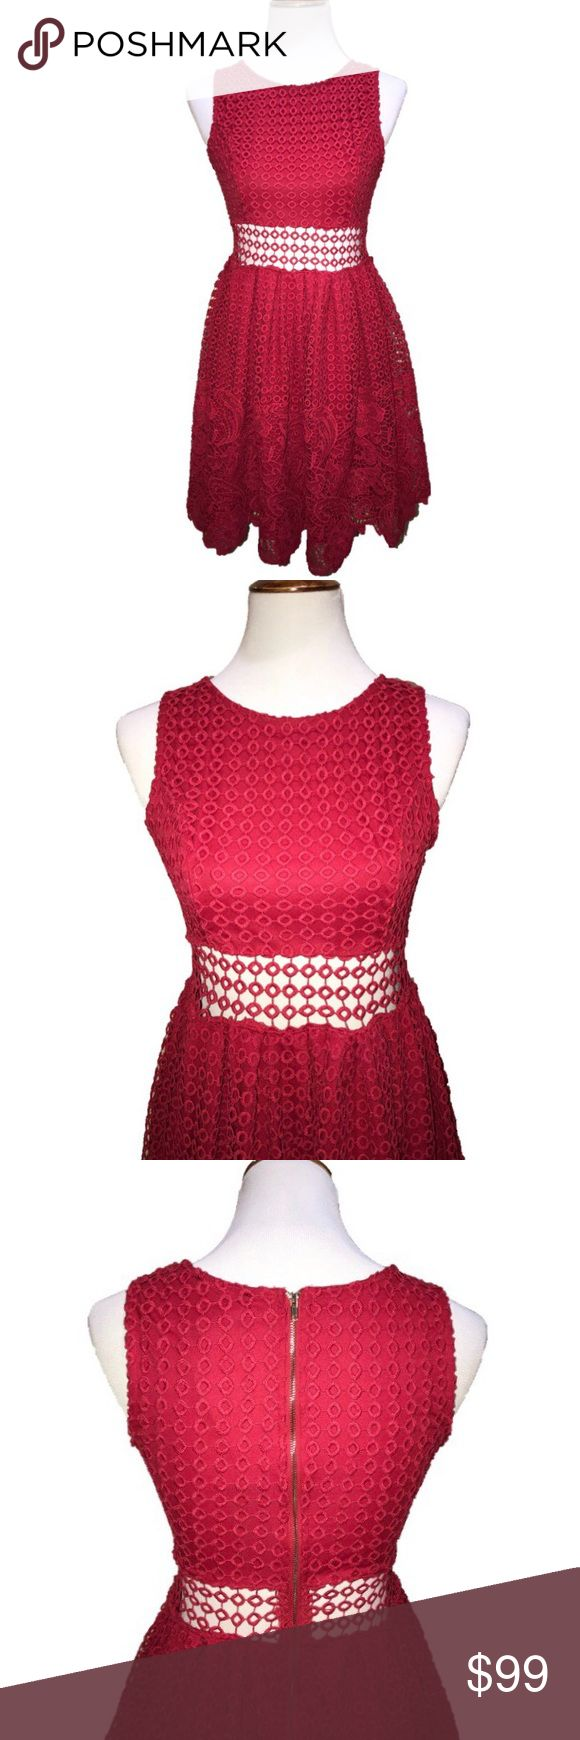 Romeo + Juliet Couture Red Peekaboo Crochet Dress New with tags, gorgeous for Valentines Day❤️! Romeo + Juliet Couture red fit and flare midi dress. Bold red on red crochet overlay on top with red lacy bottom hem, peek a boo waistline, flare pouf skirt, long gold rear zipper. Romeo & Juliet Couture Dresses Midi